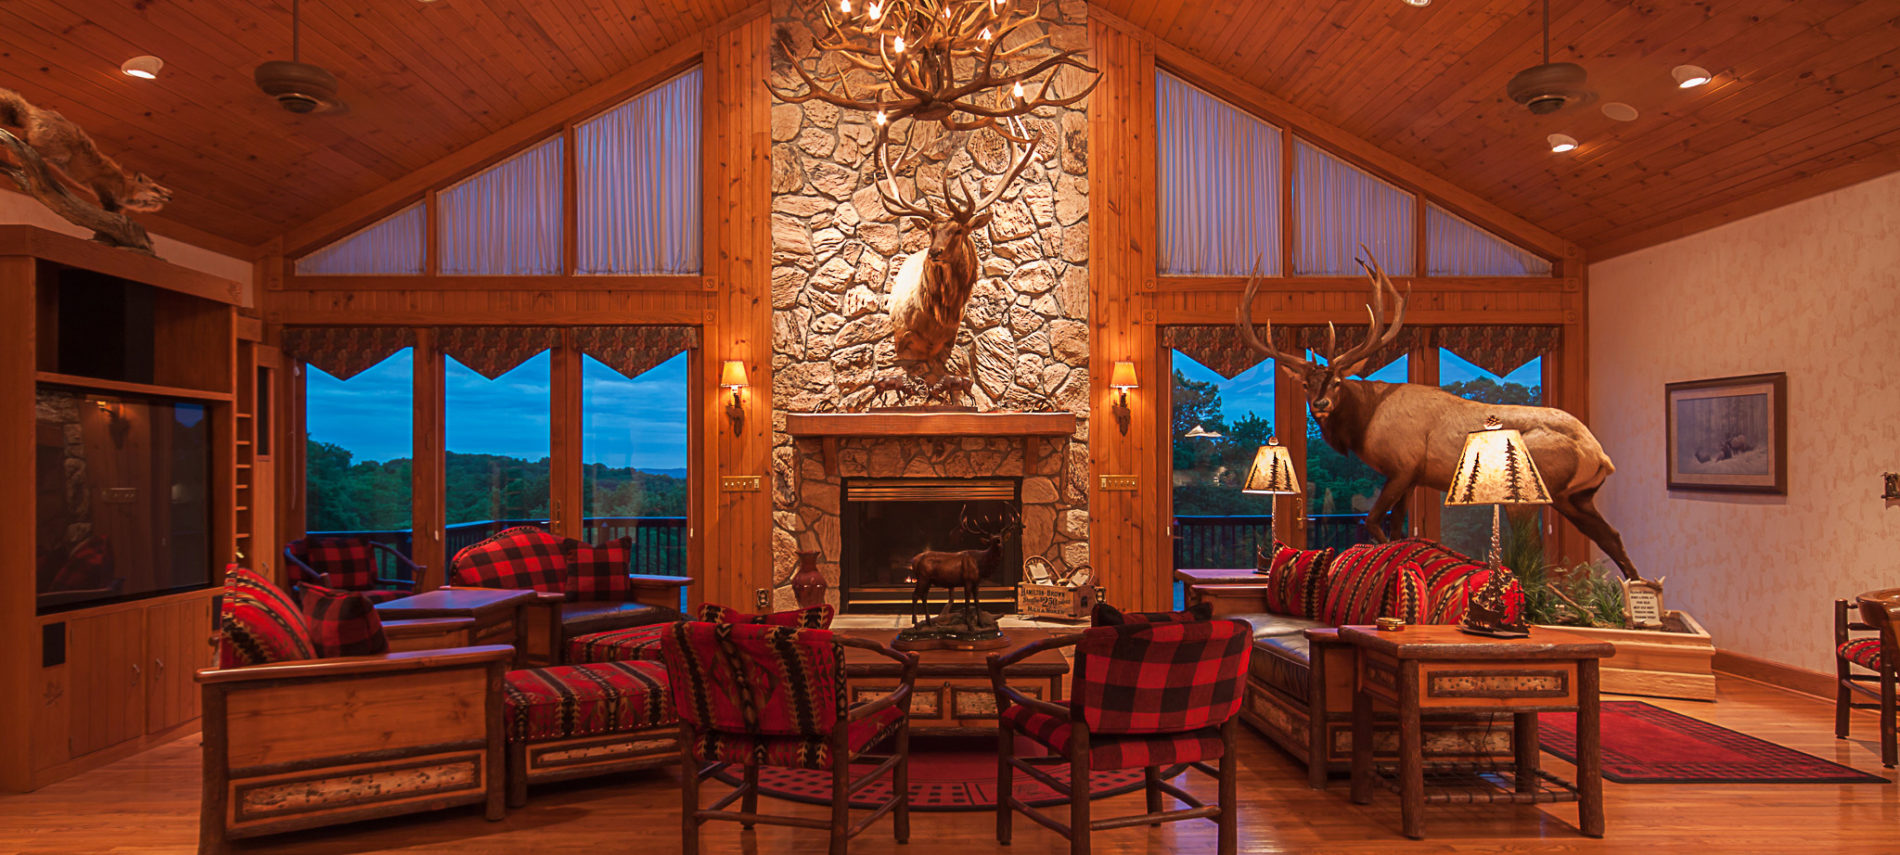 Photo of the Great Room at the Lodge.